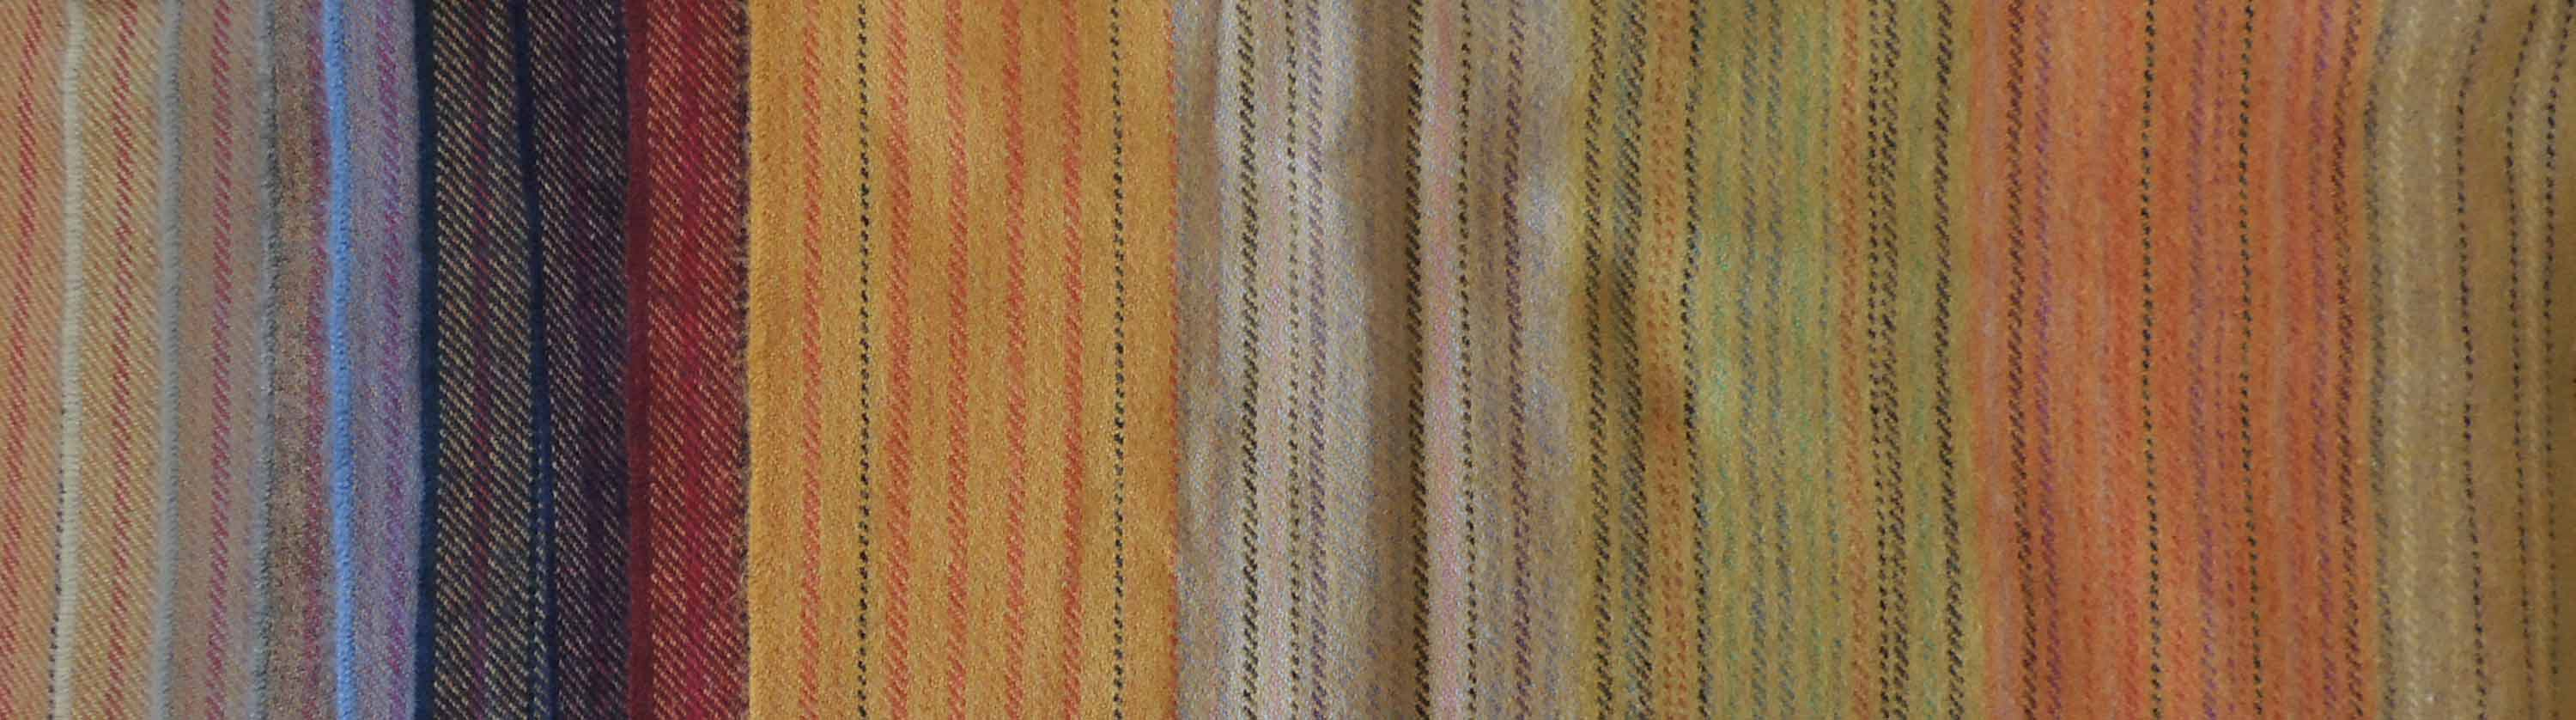 Colored striped throws in alpaca blend.